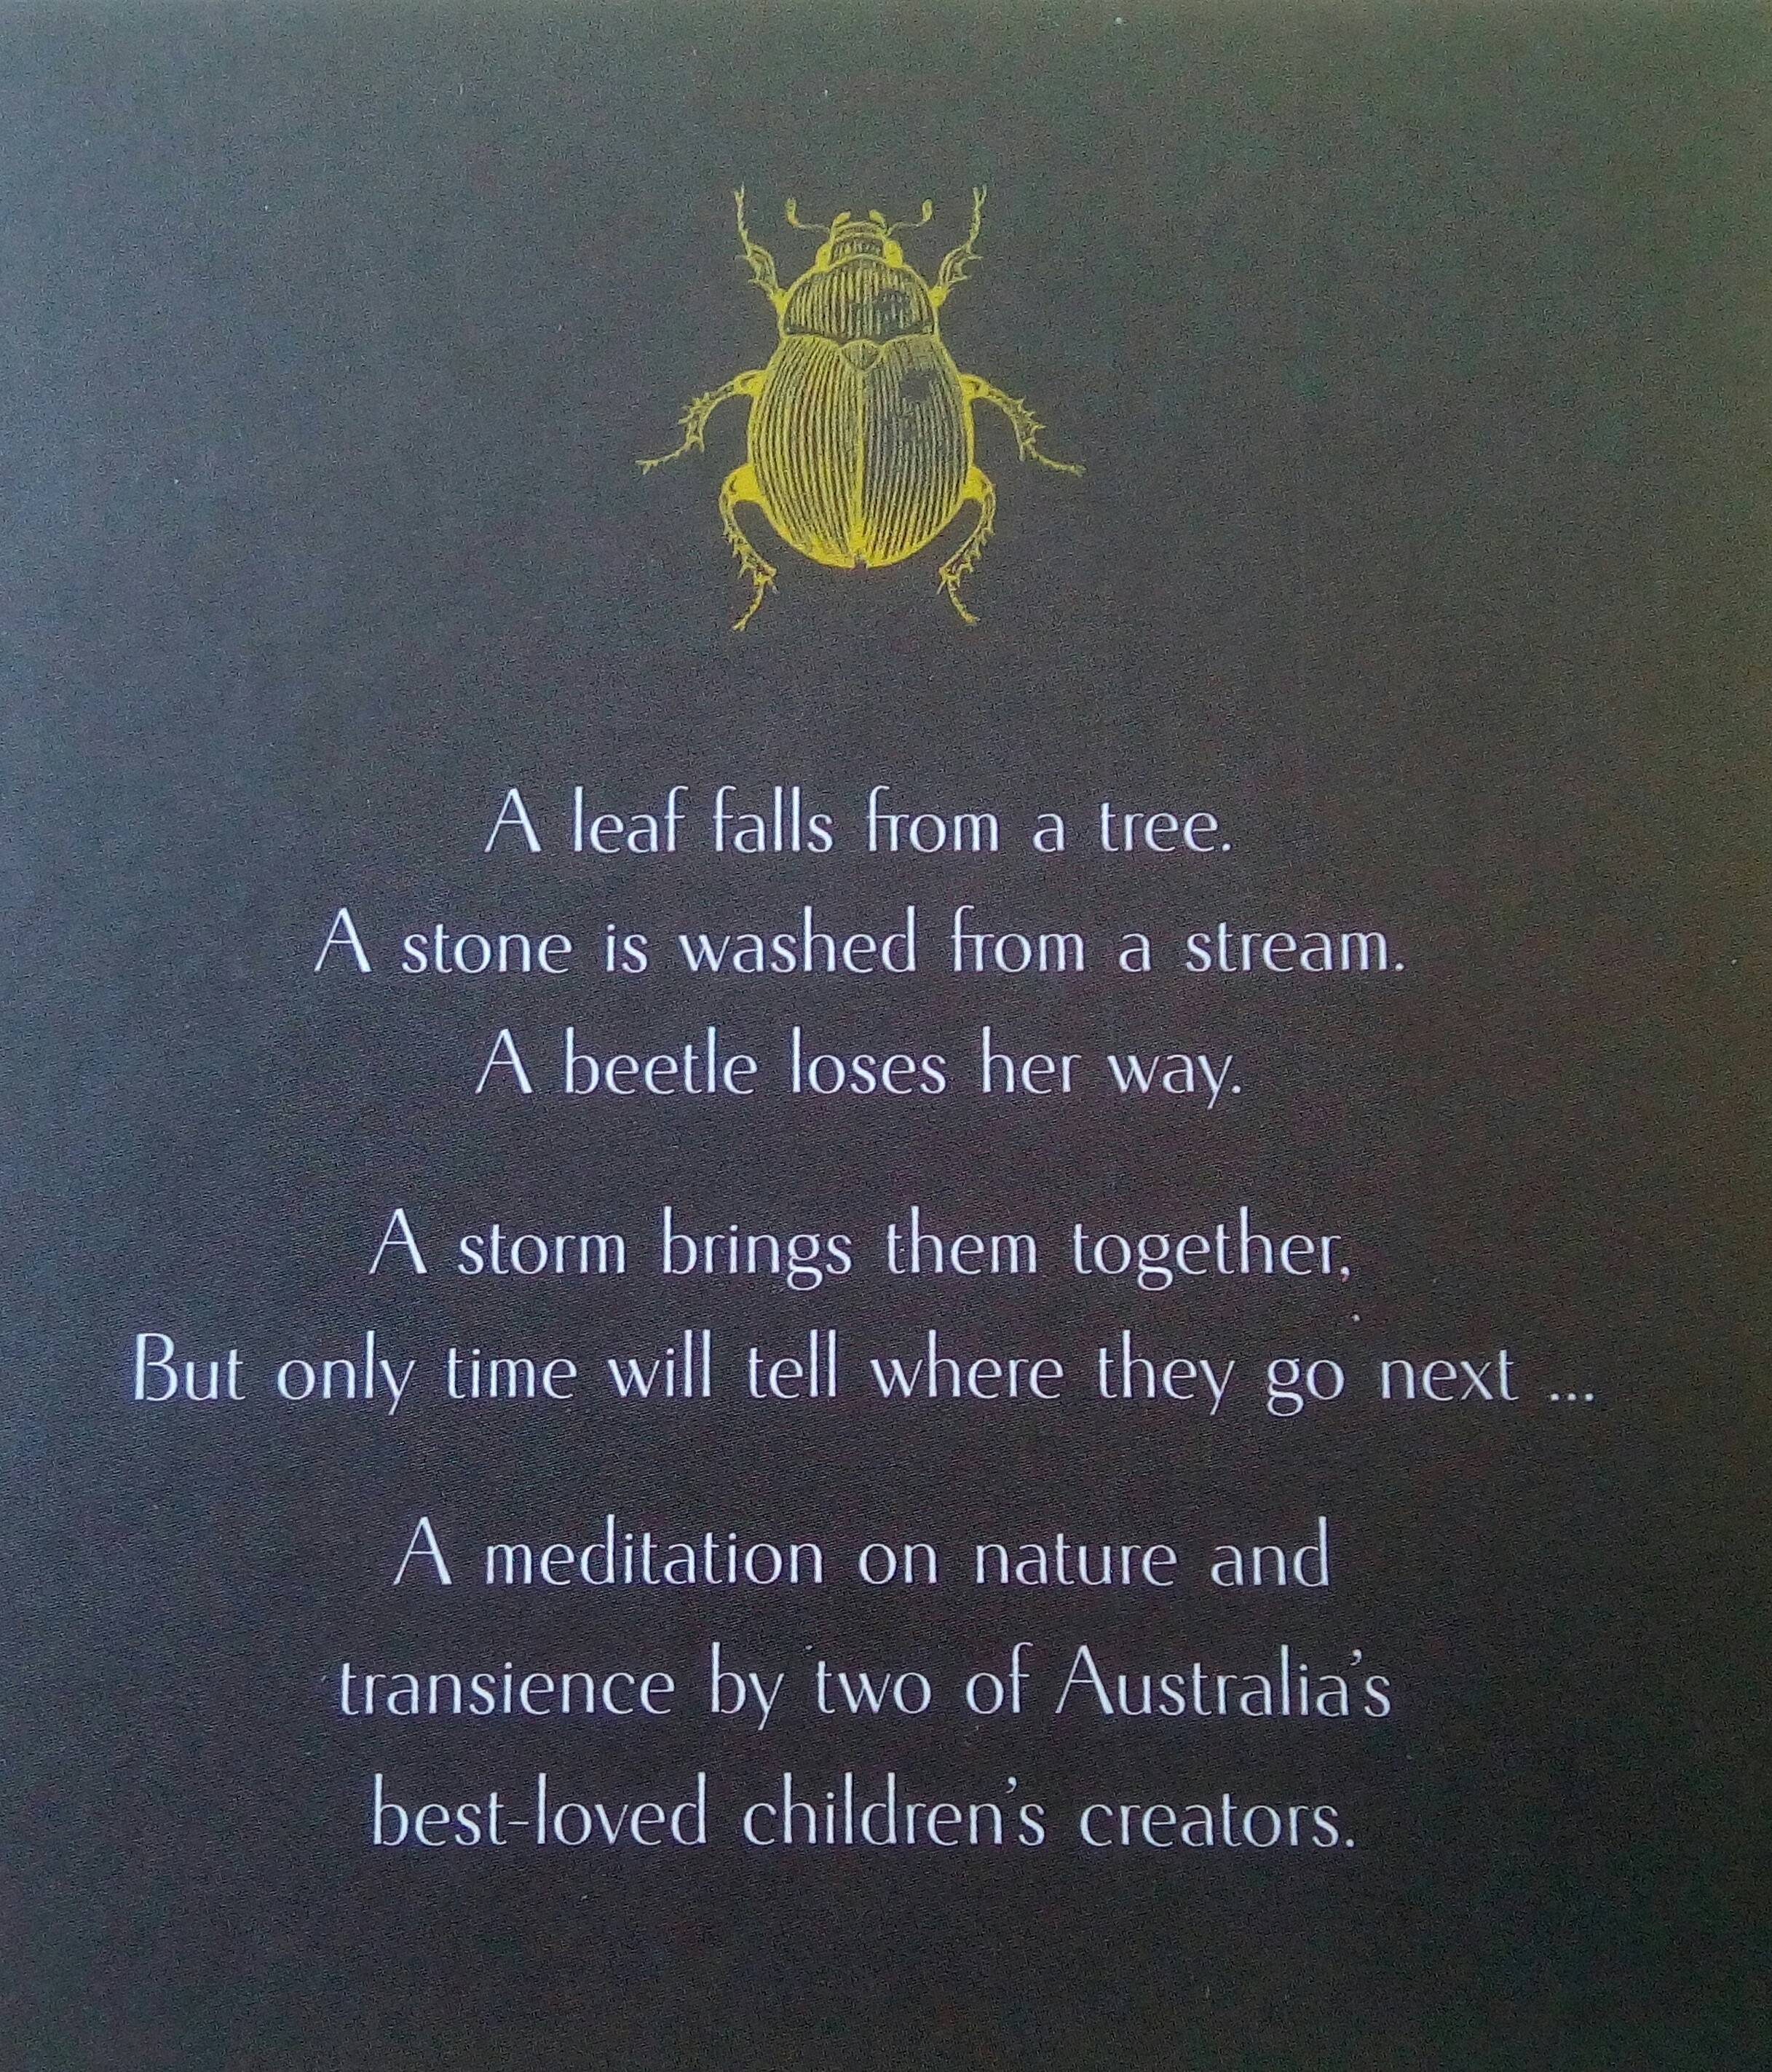 Leaf Stone Beetle back cover.JPG